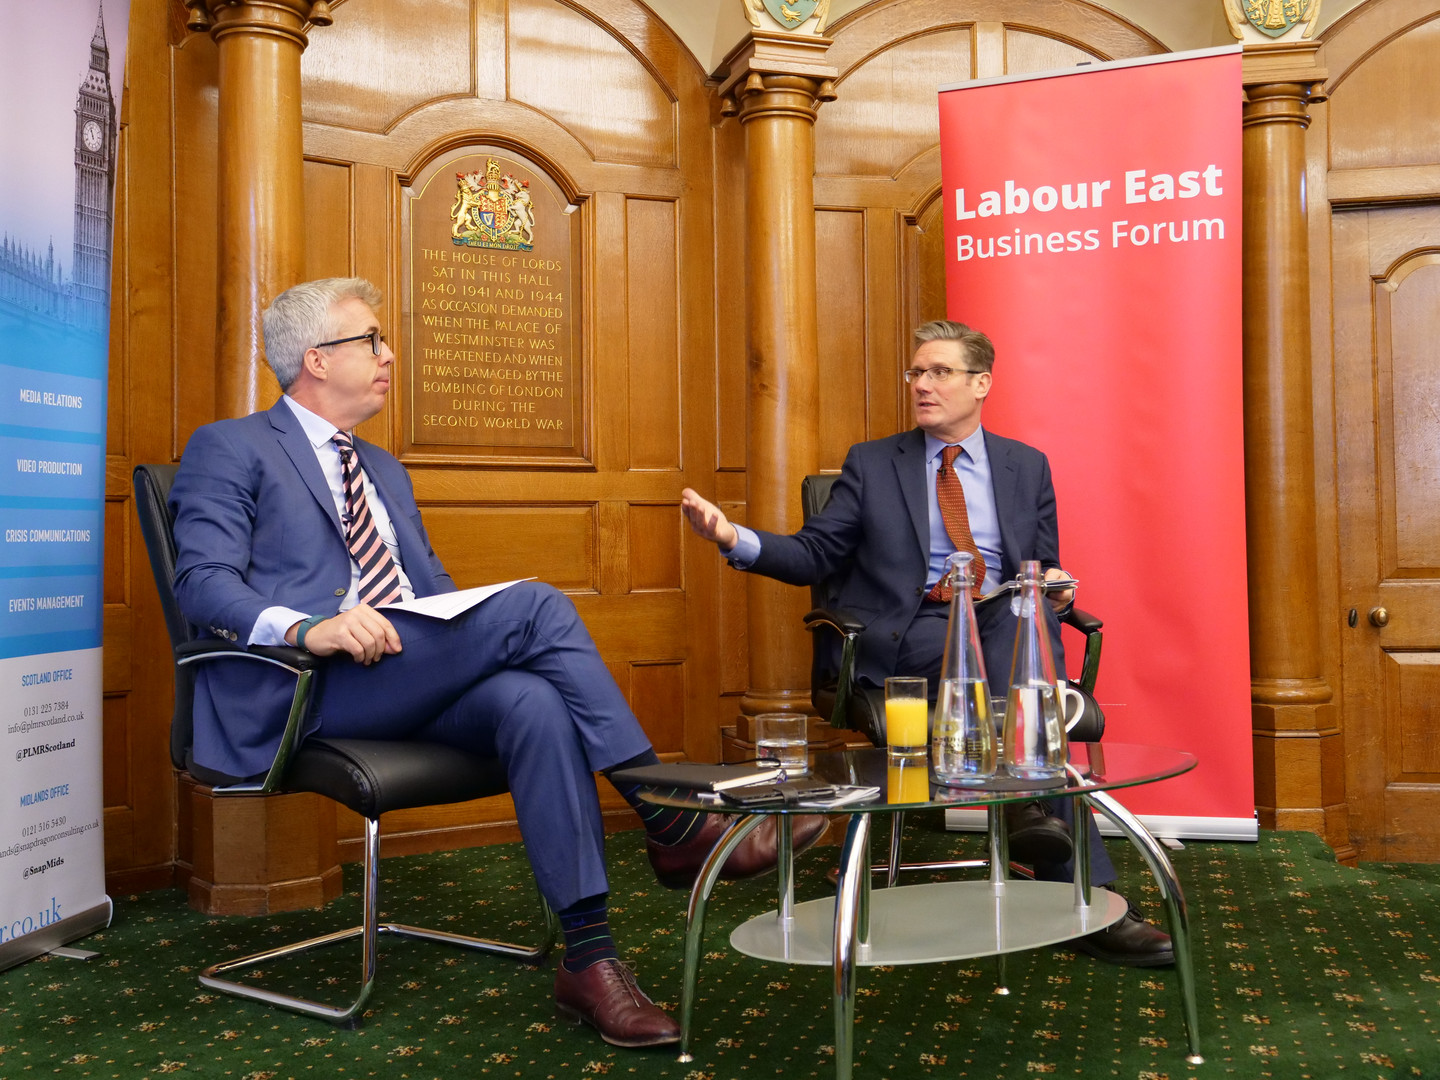 Kevin Craig and Sir Keir Starmer